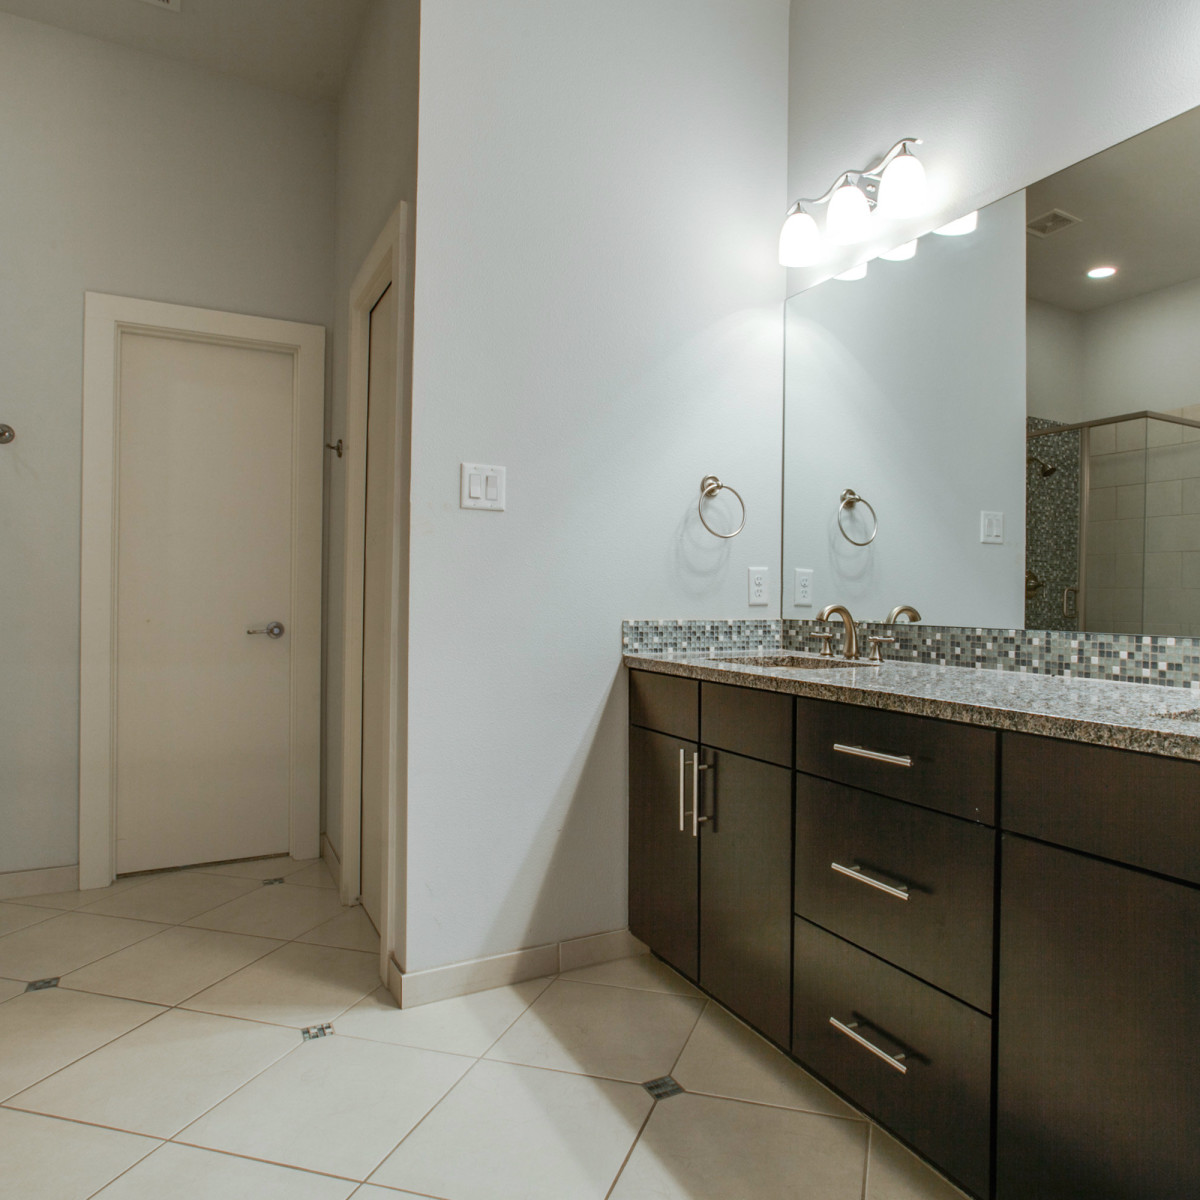 3200 Ross Ave in Dallas master bathroom